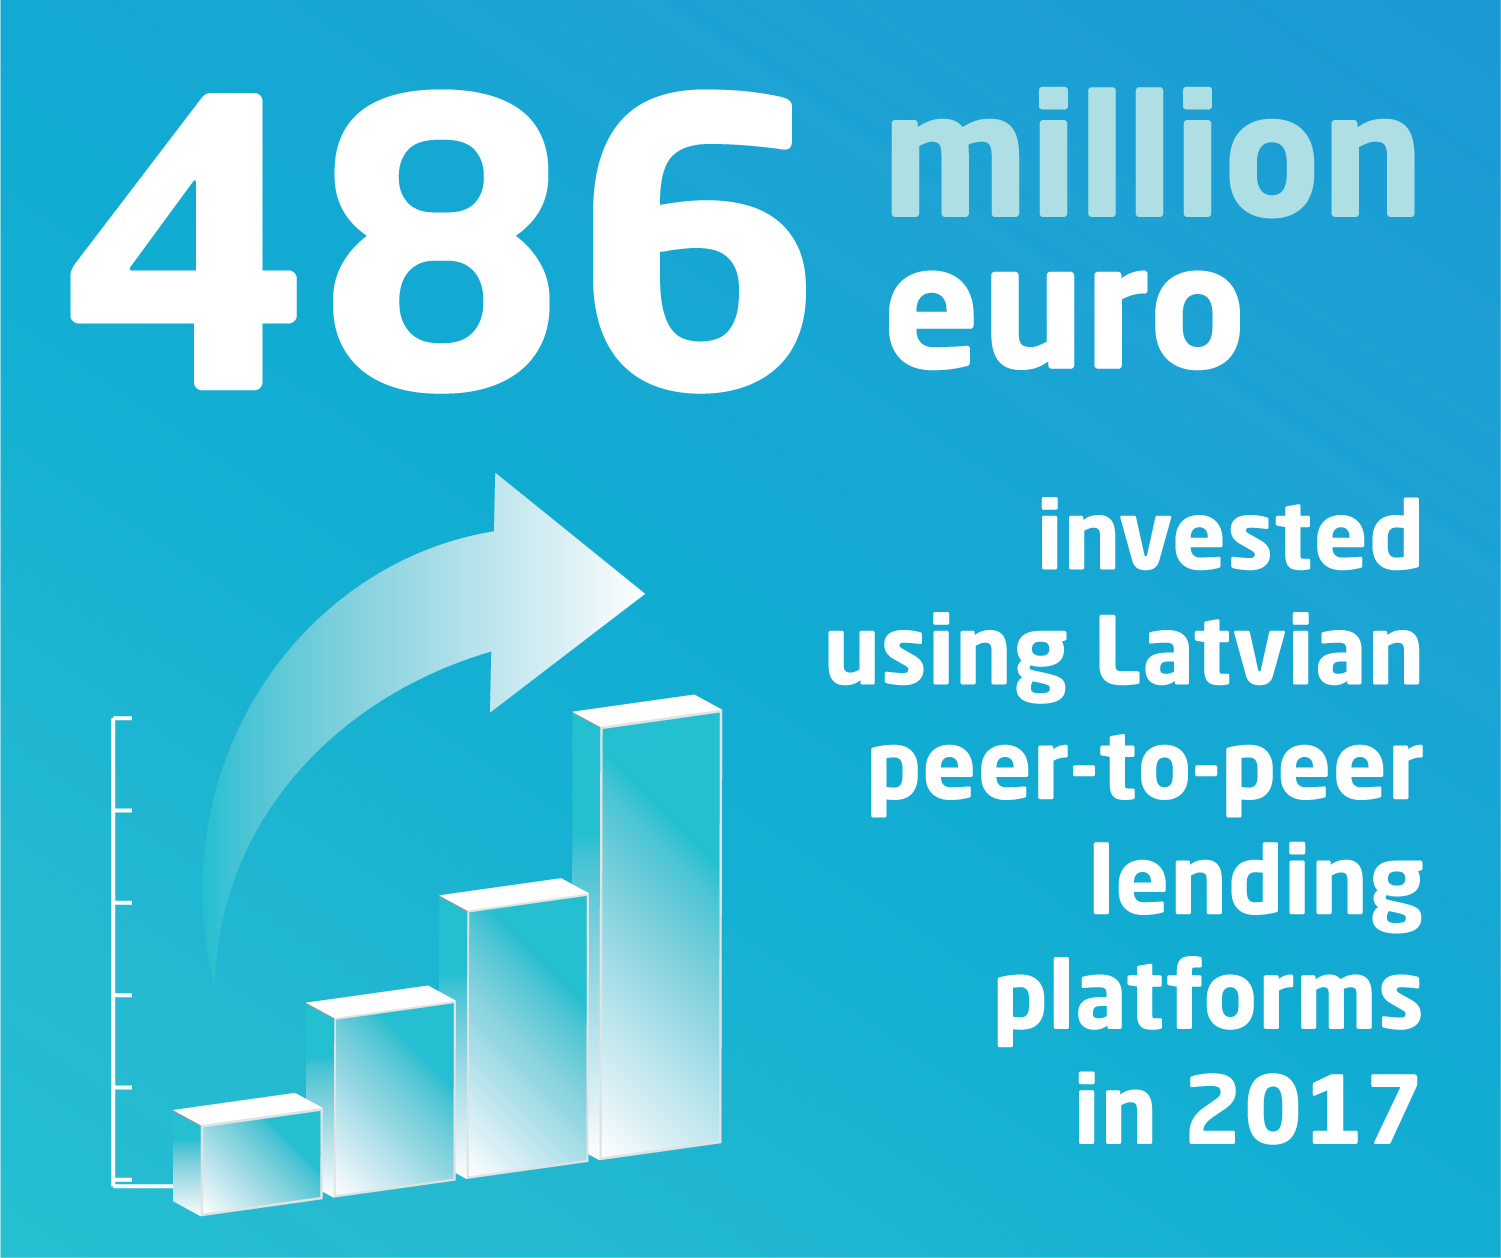 Picture for post Association: 486 million euro invested using Latvian peer-to-peer lending platforms in 2017